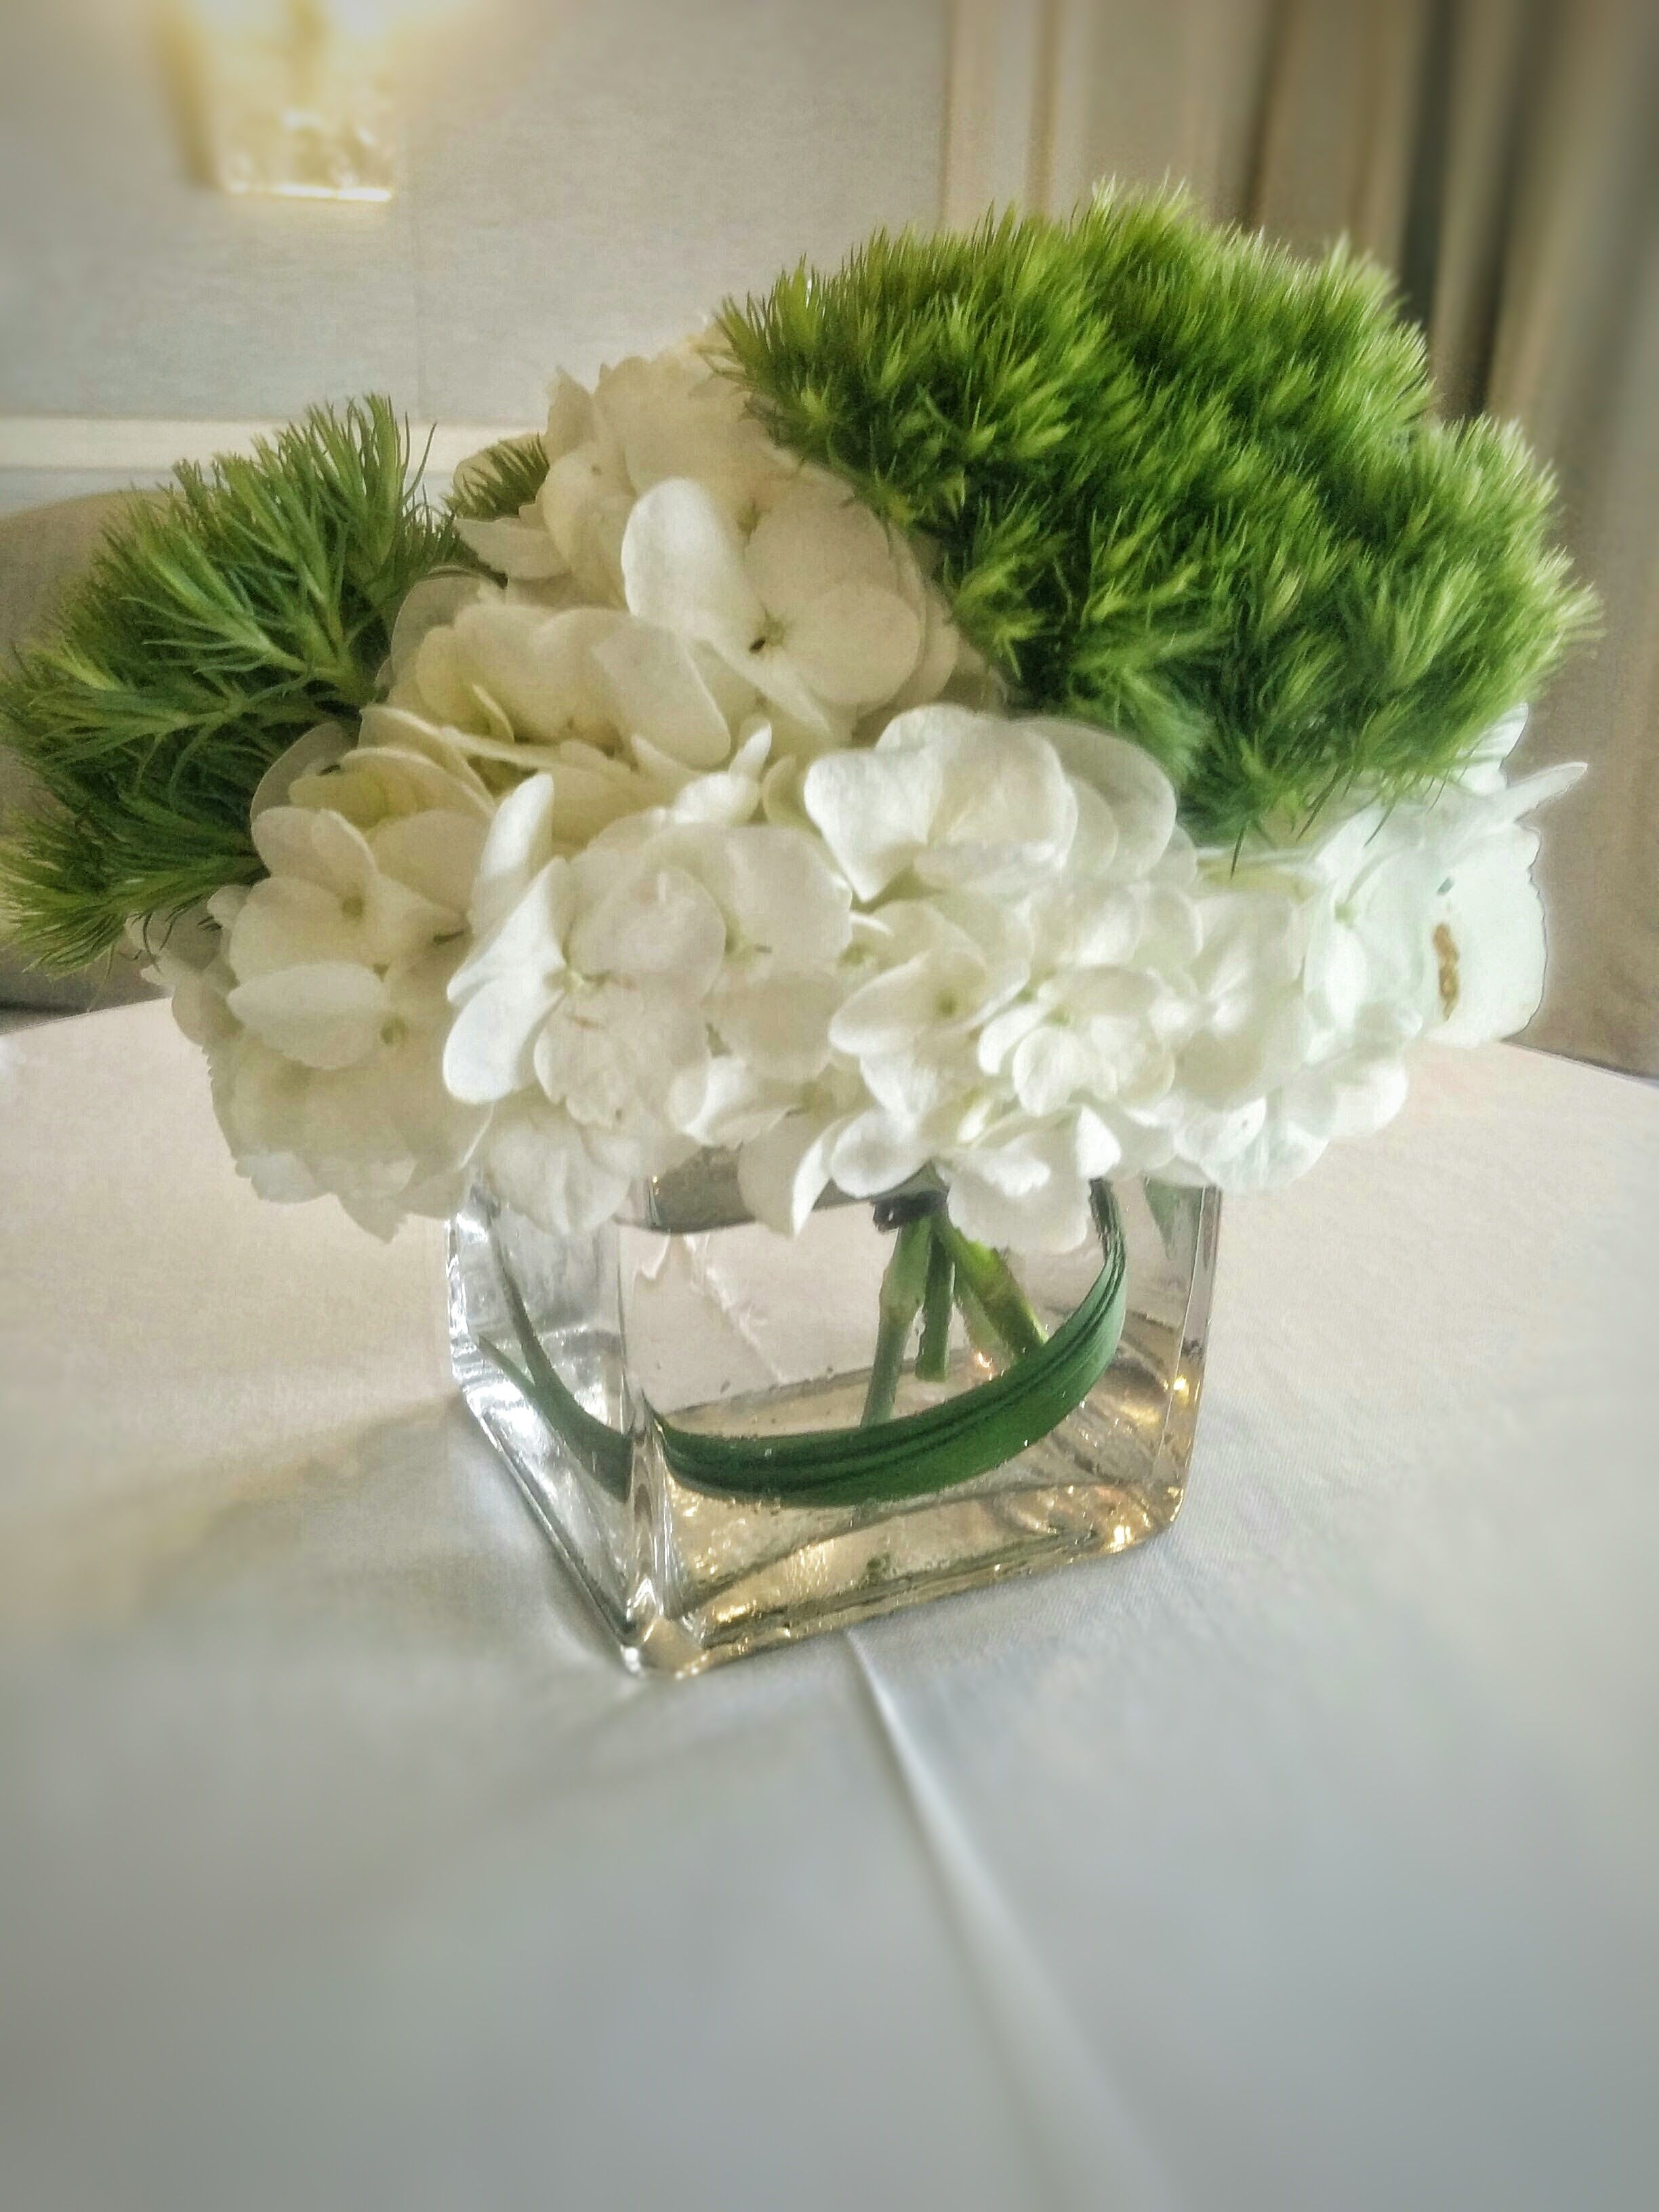 Square Glass Vase With White Hydrangeas And Green Trick Floral Table Centerpieces